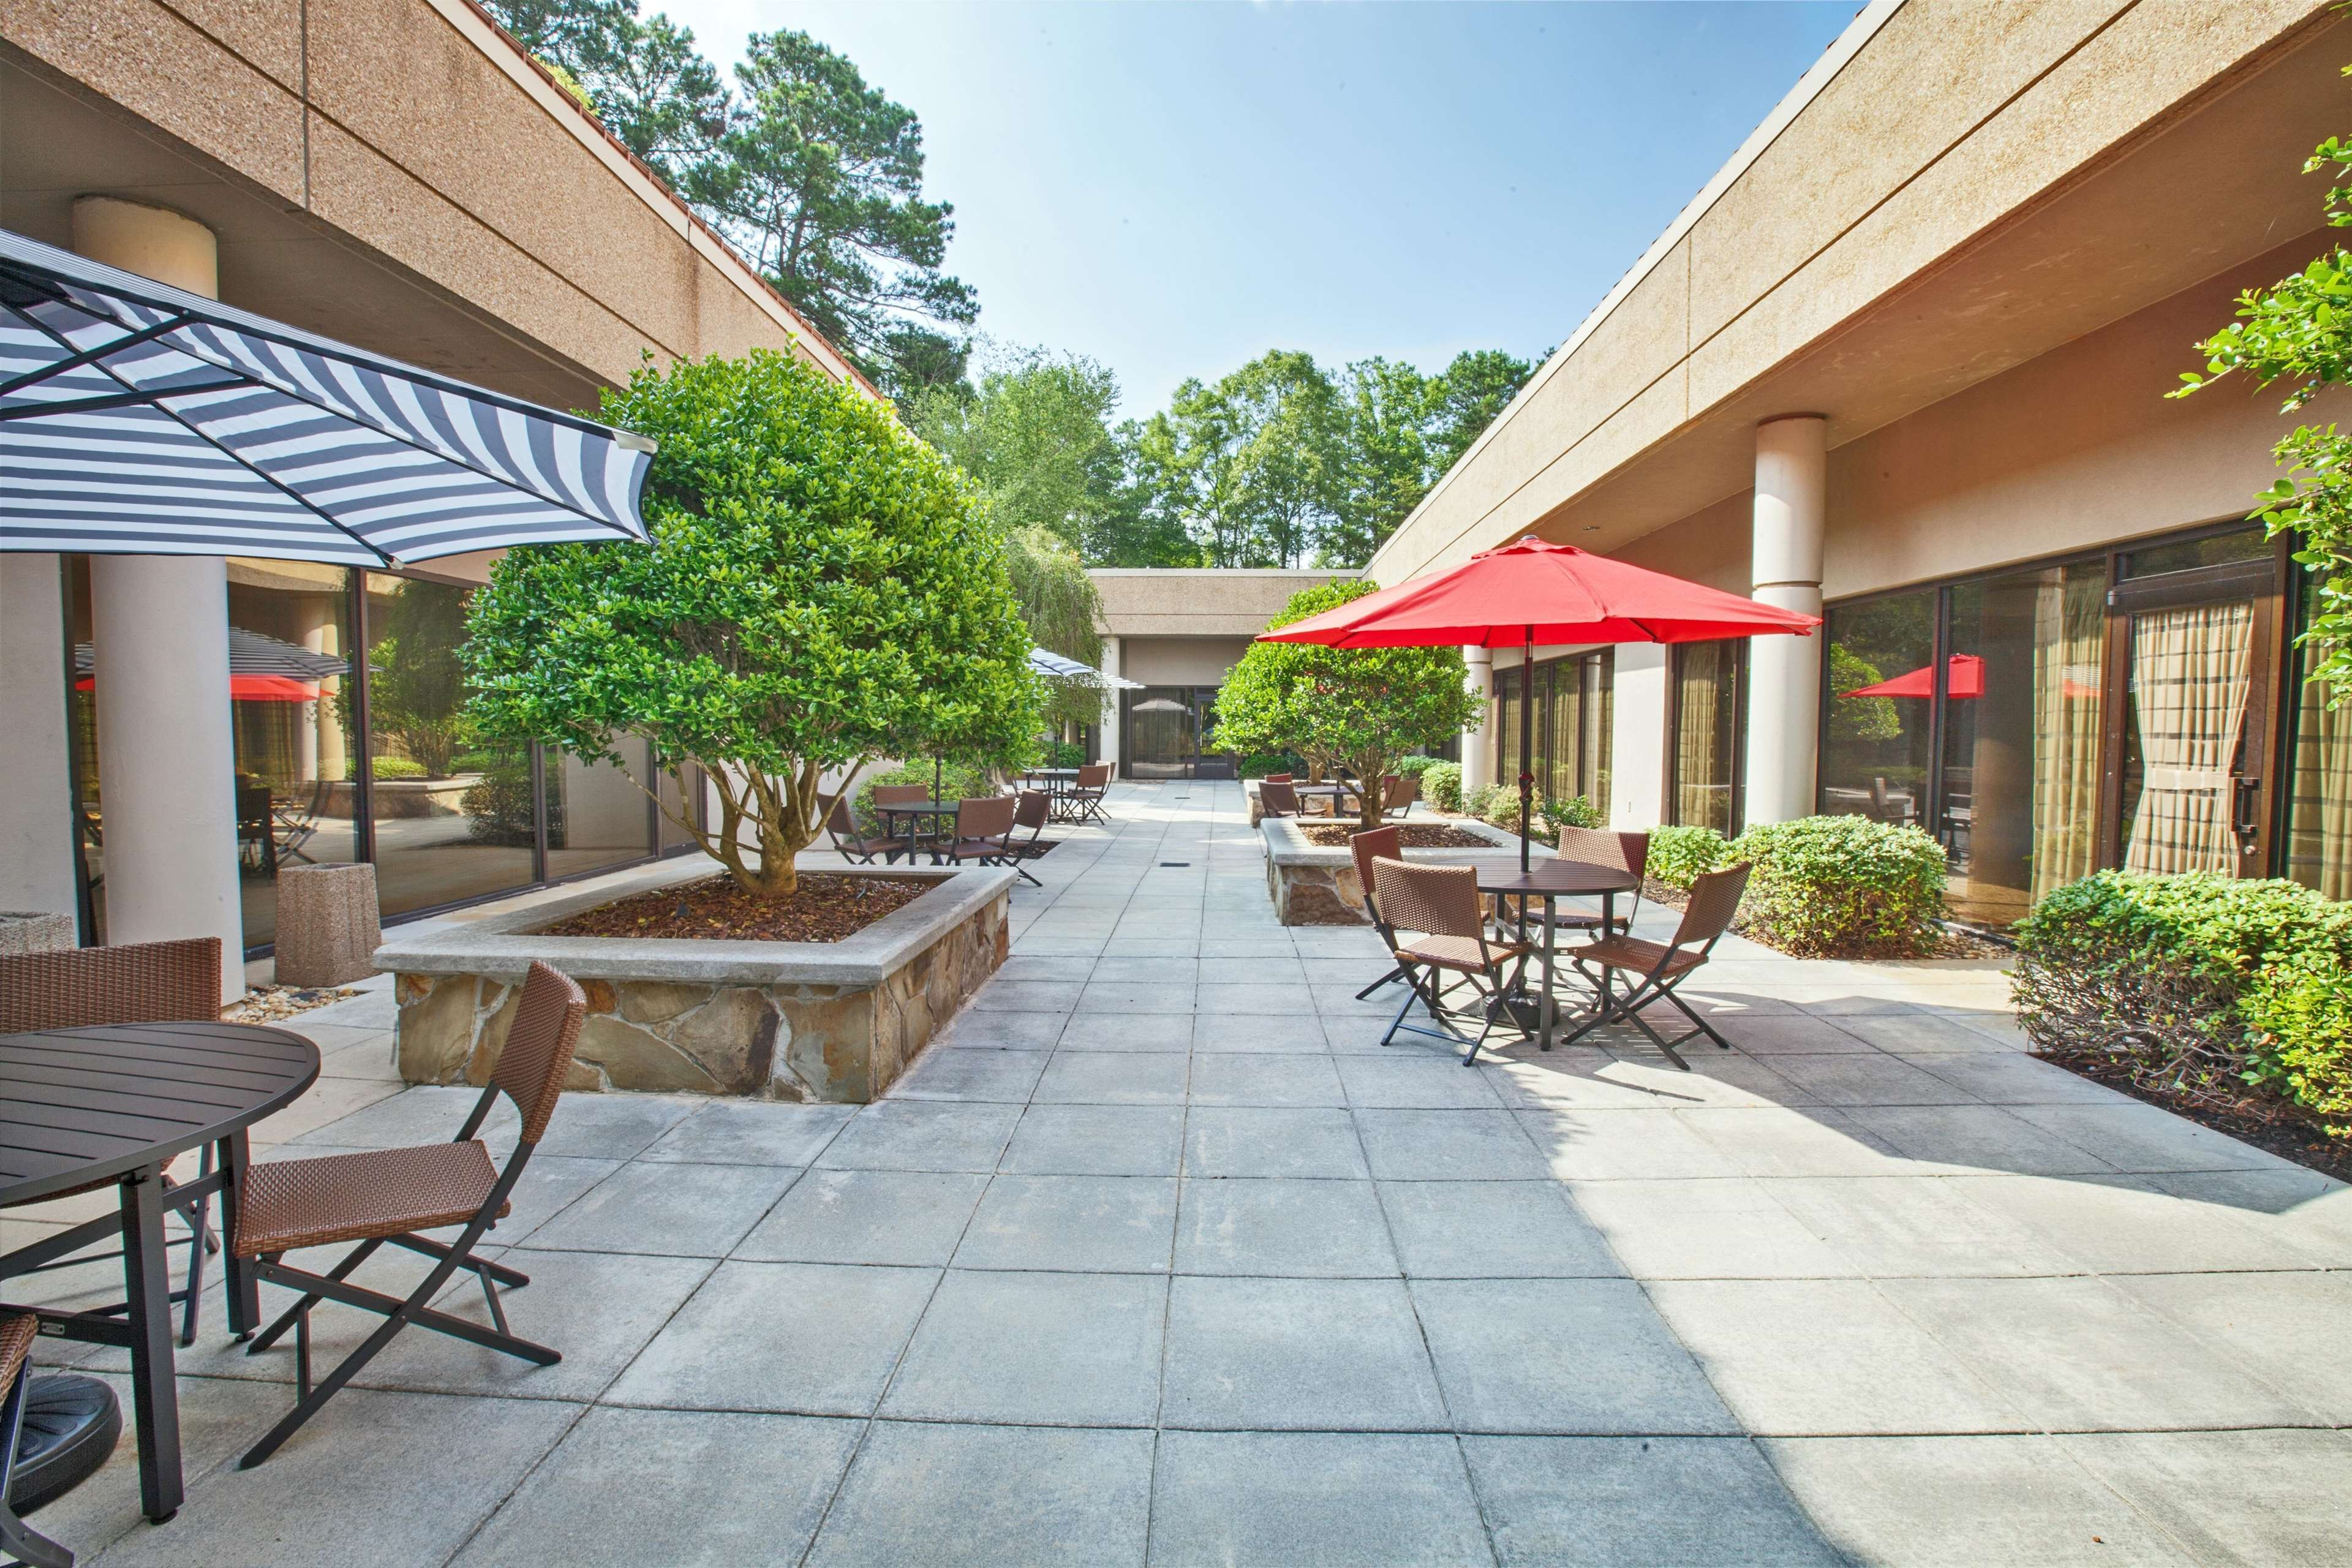 Peachtree City Hotel & Conference Center image 3